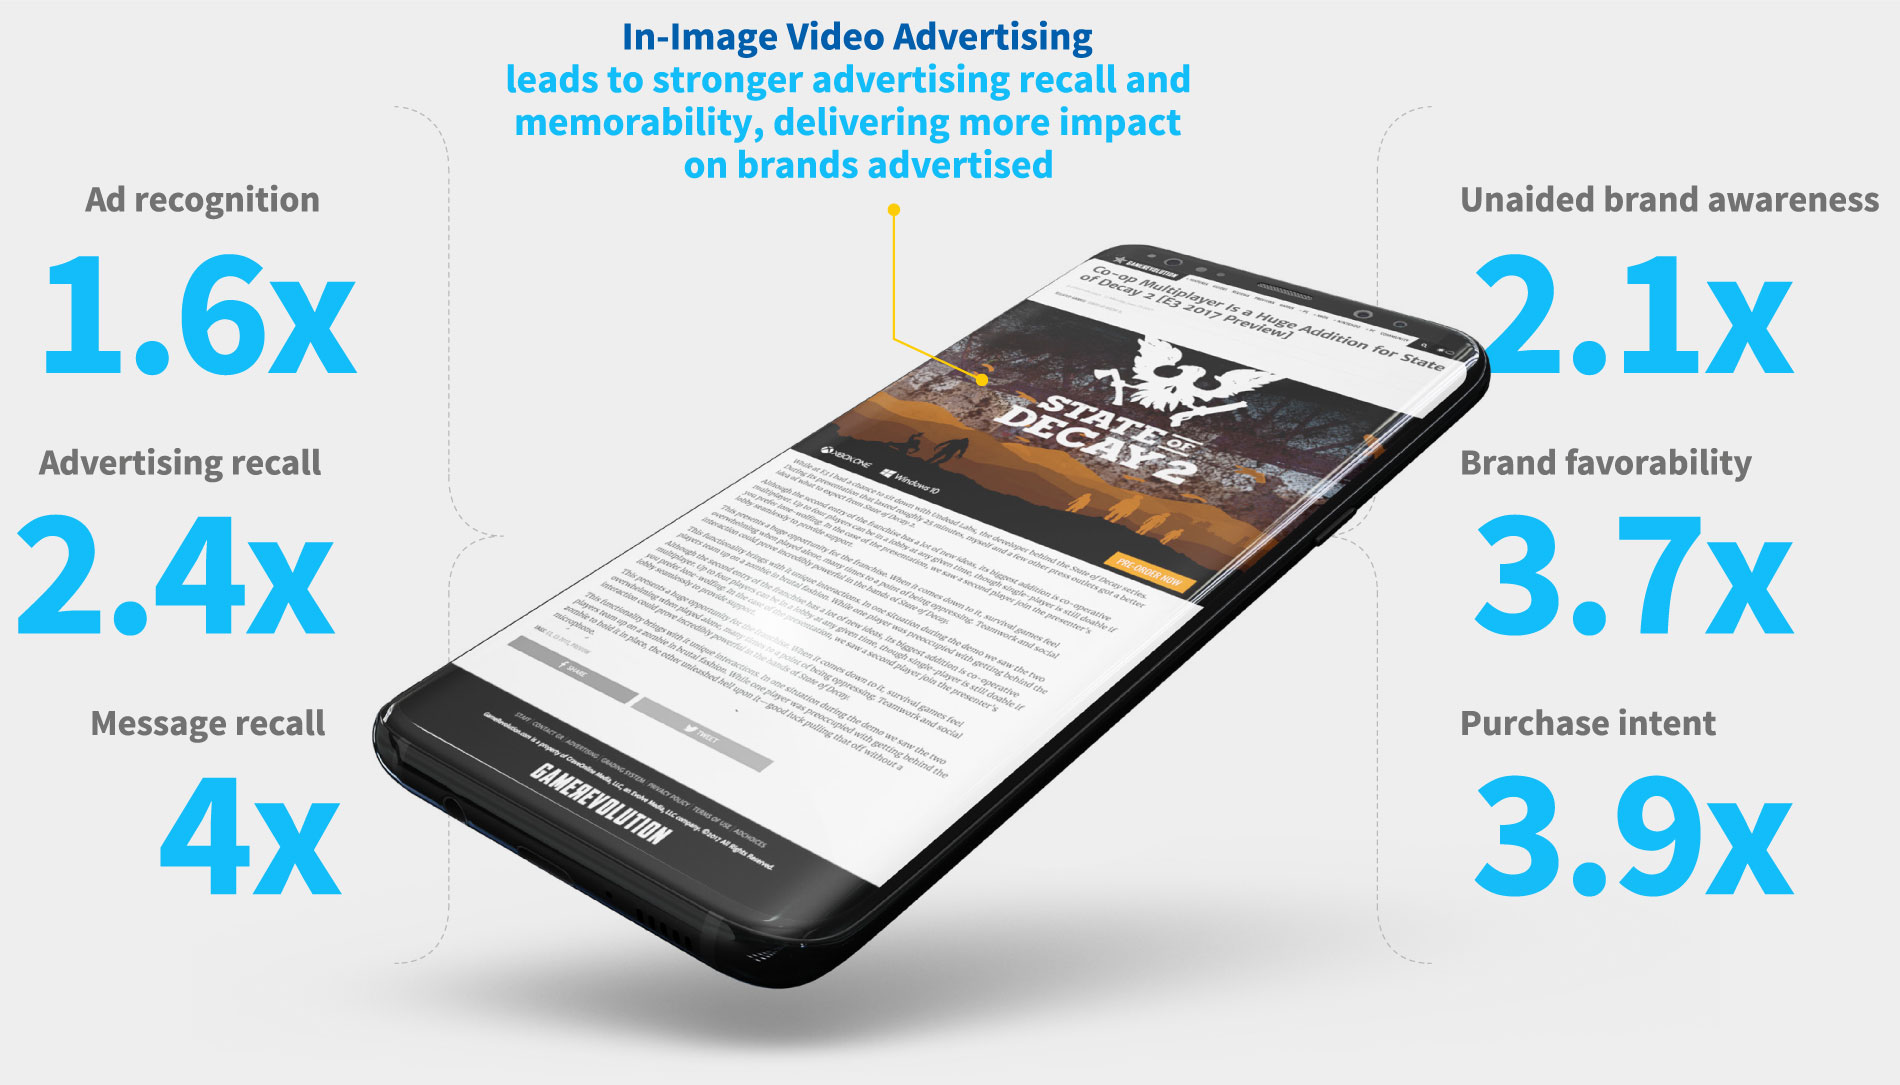 In-Image video advertising